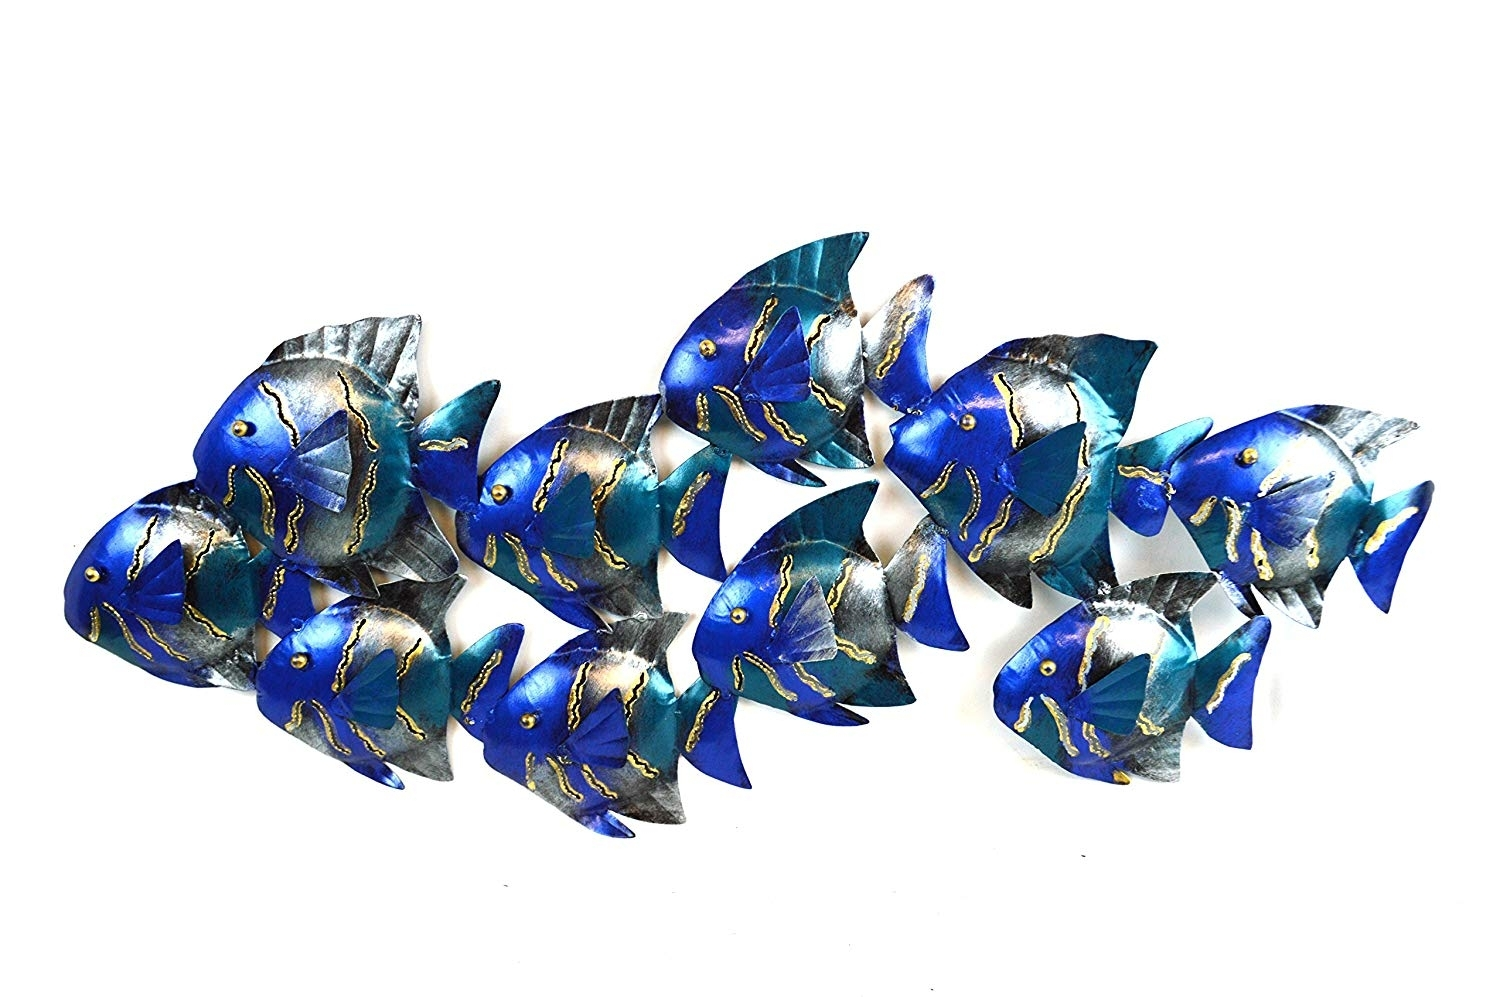 Amazon: Beautiful Unique Blue Nautical School Of Fish inside Metal Wall Art (Image 3 of 20)